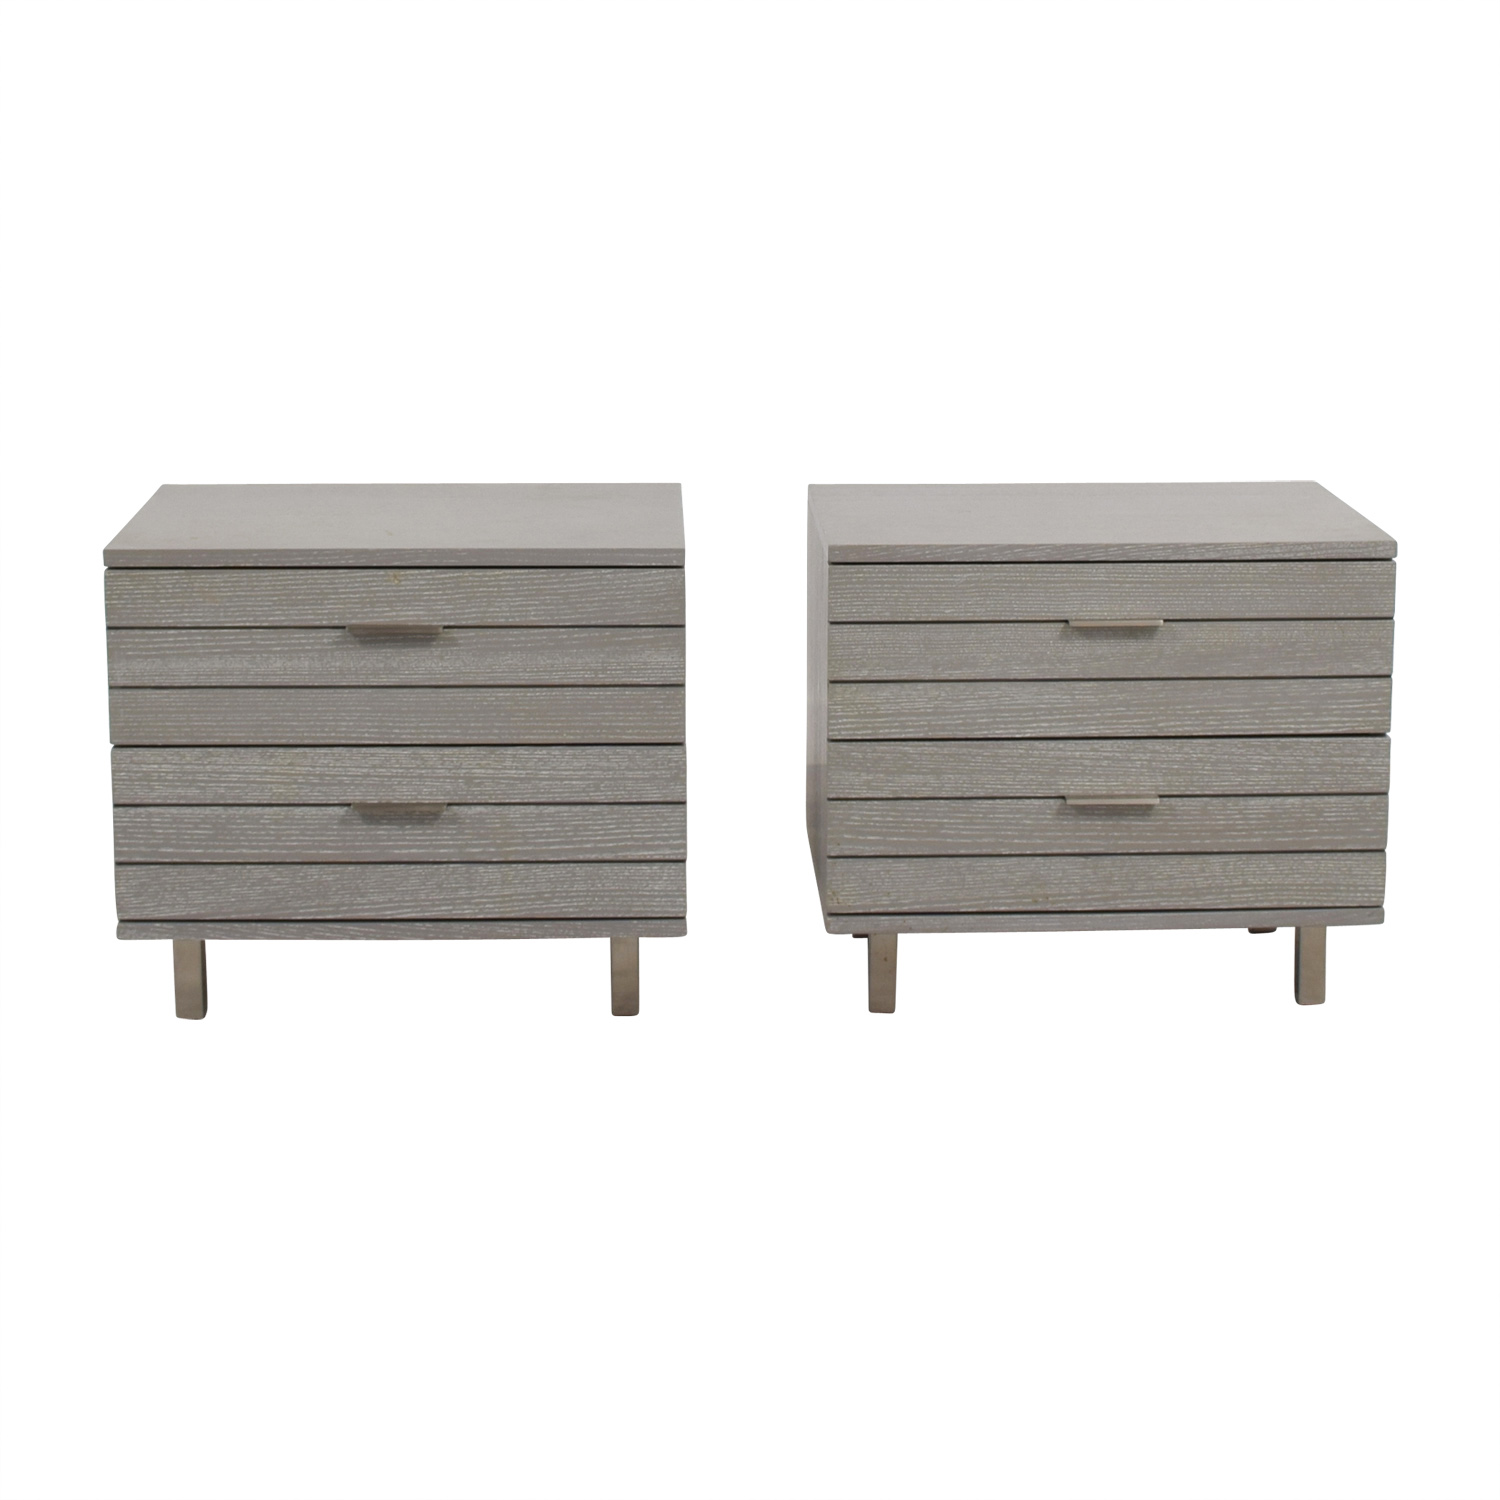 CB2 CB2 Grey Two-Drawer Night Stands price